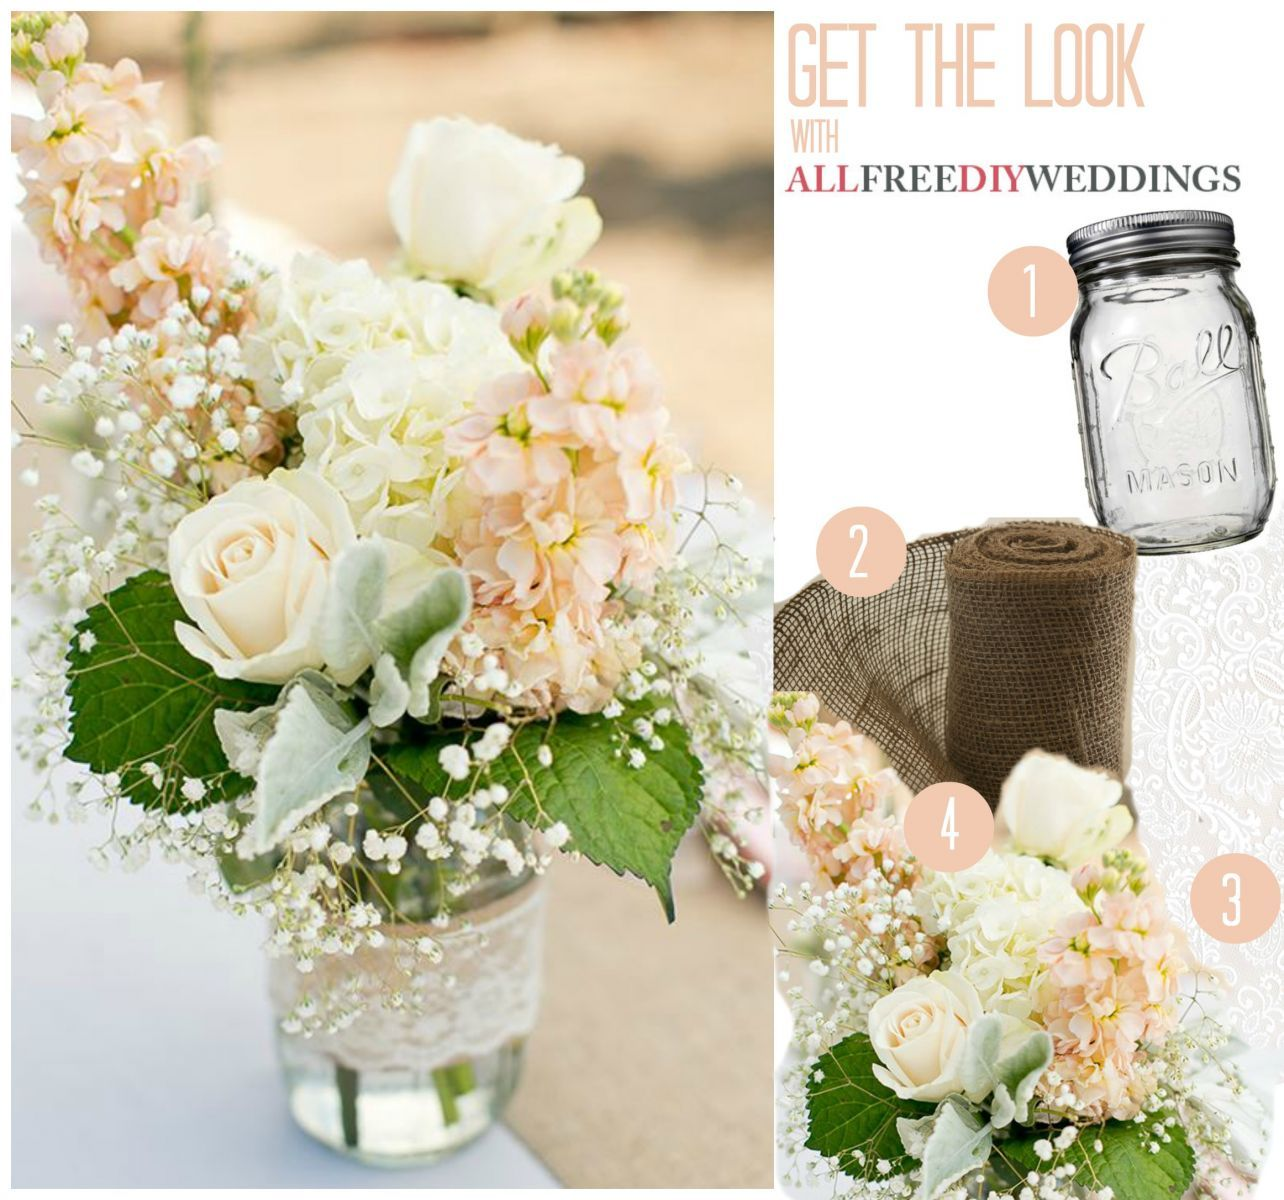 Vintage Wedding Ideas Mason Jars: Lace And Burlap Mason Jar Centerpieces